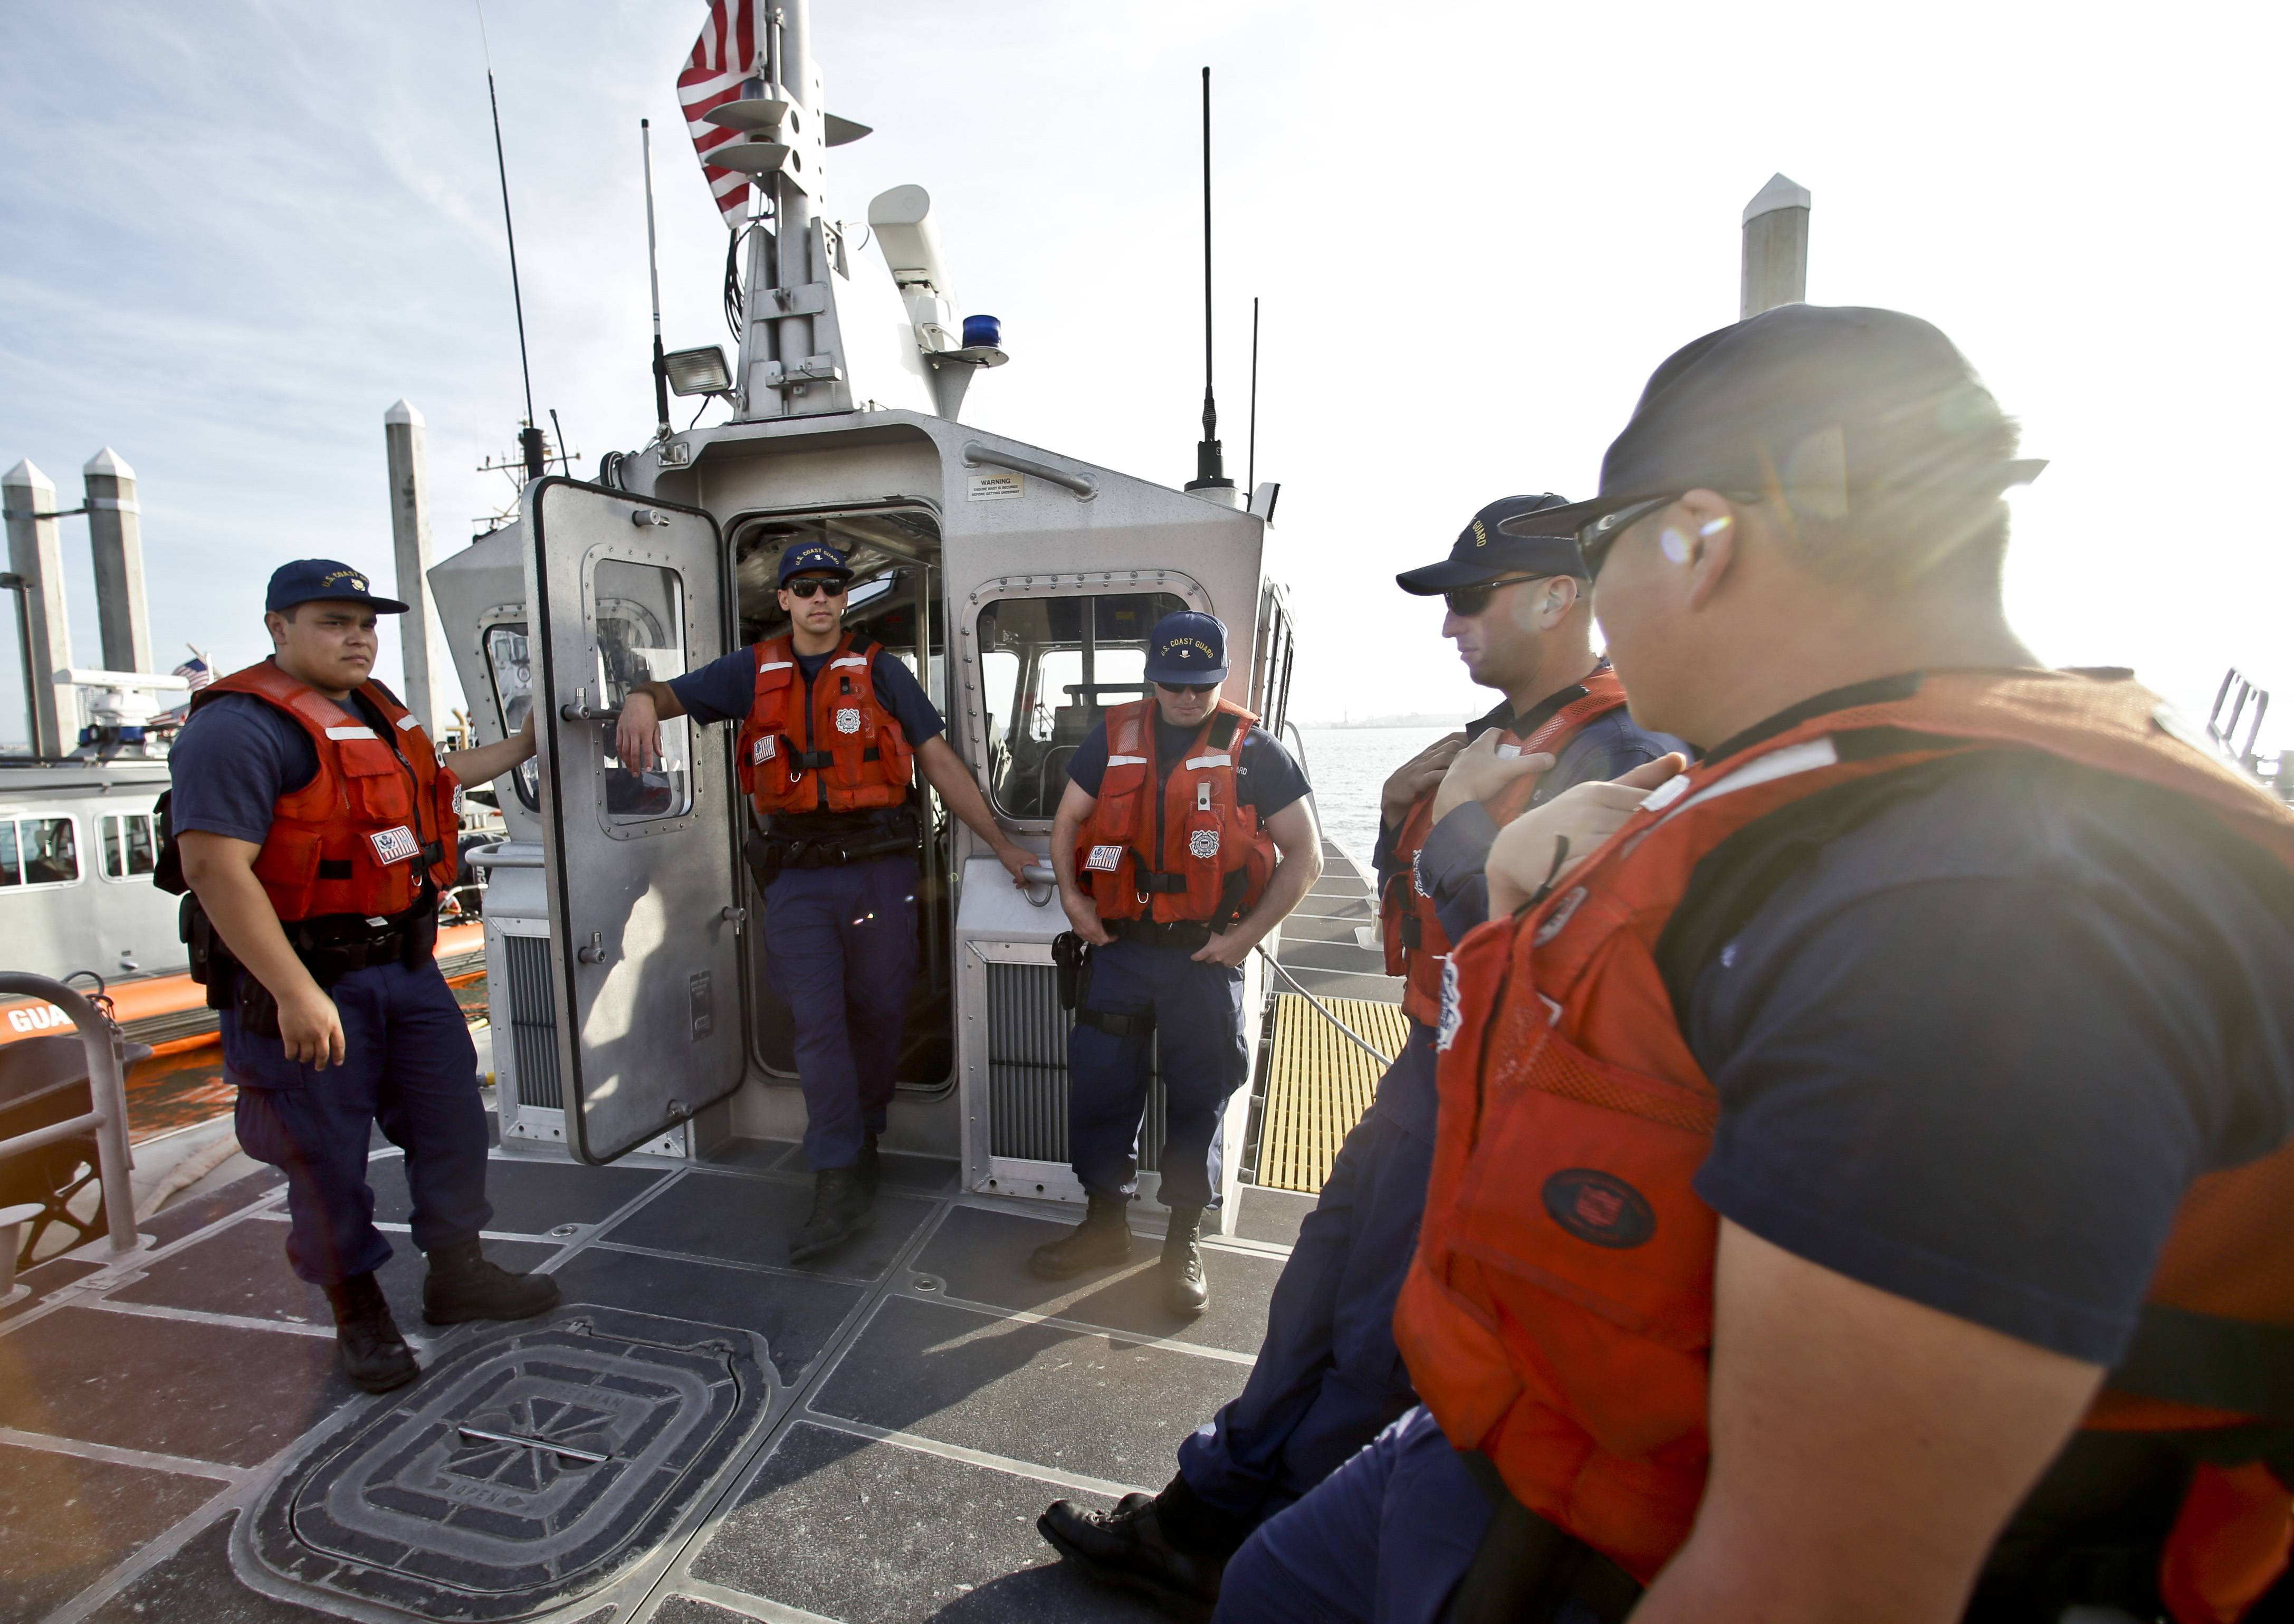 The crew of a 45 foot Coast Guard patrol boat runs through their pre-departure briefing in San Diego harbor in San Diego. With the drug war locking down land routes across Latin America and at the U.S. border, smugglers have been increasingly using large vessels to carry multi-ton loads of cocaine and marijuana hundreds of miles offshore where the lead federal agency with extensive law enforcement powers is the Coast Guard, a military service roughly the size of the New York Police Department.